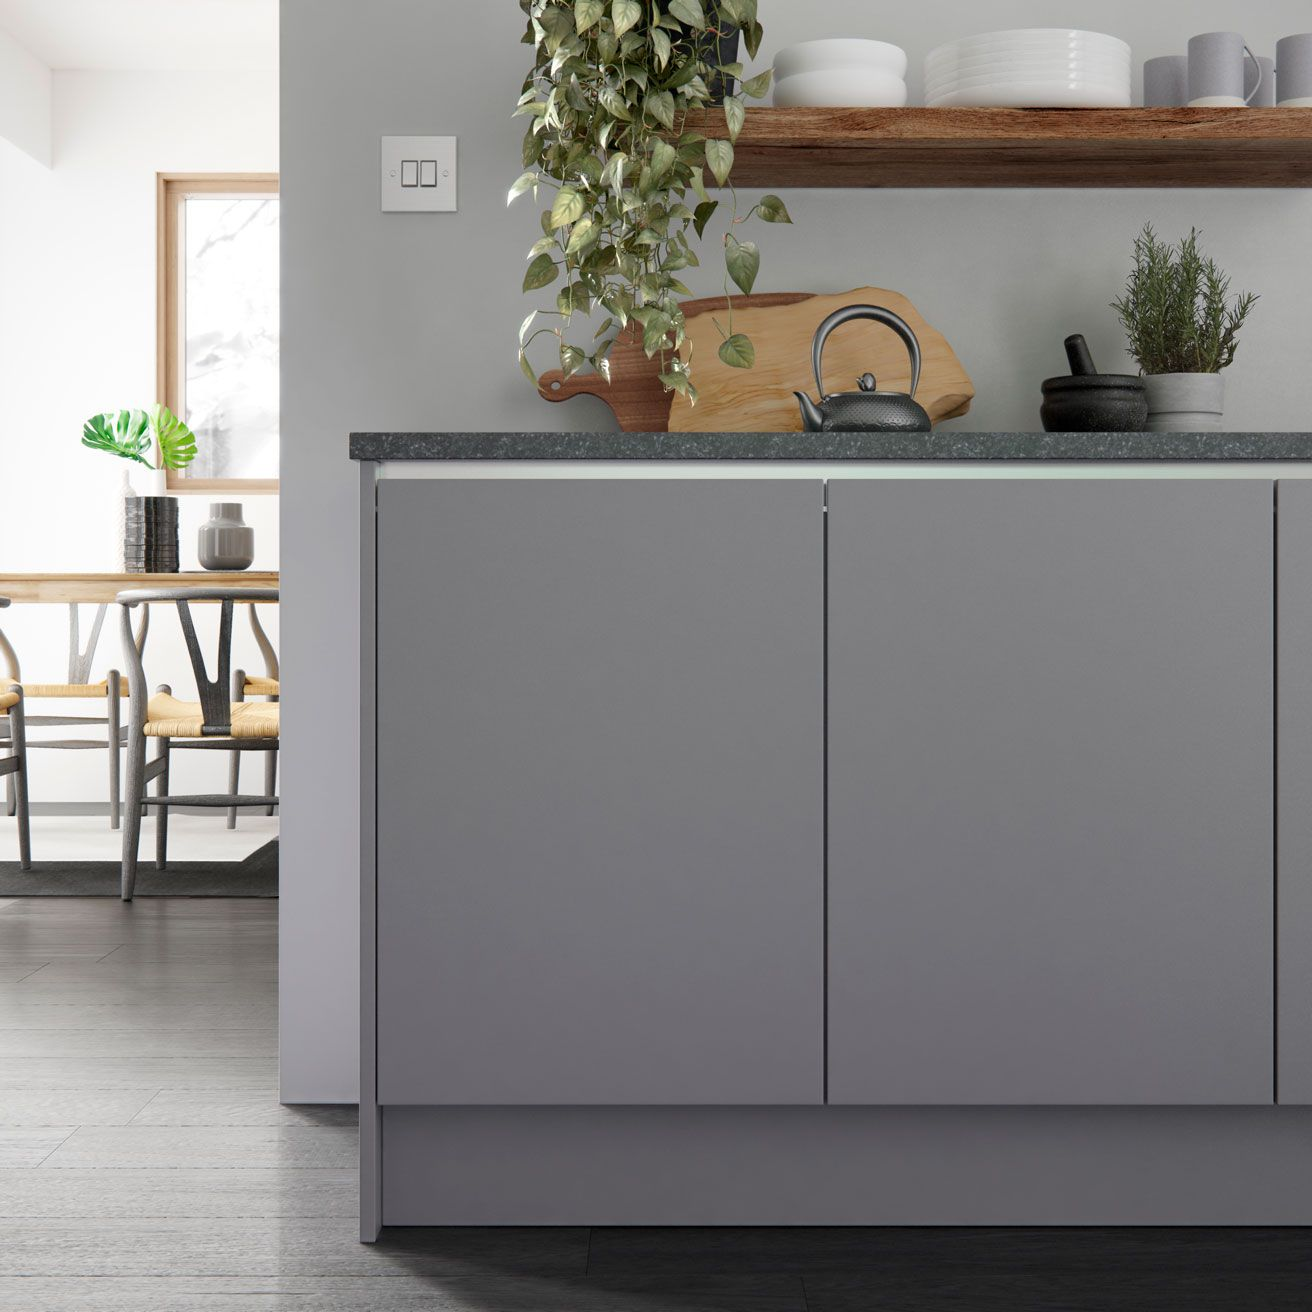 Super Matt Grey Kitchen Doors With Gola Profile For True Handleless - Matt grey kitchen doors